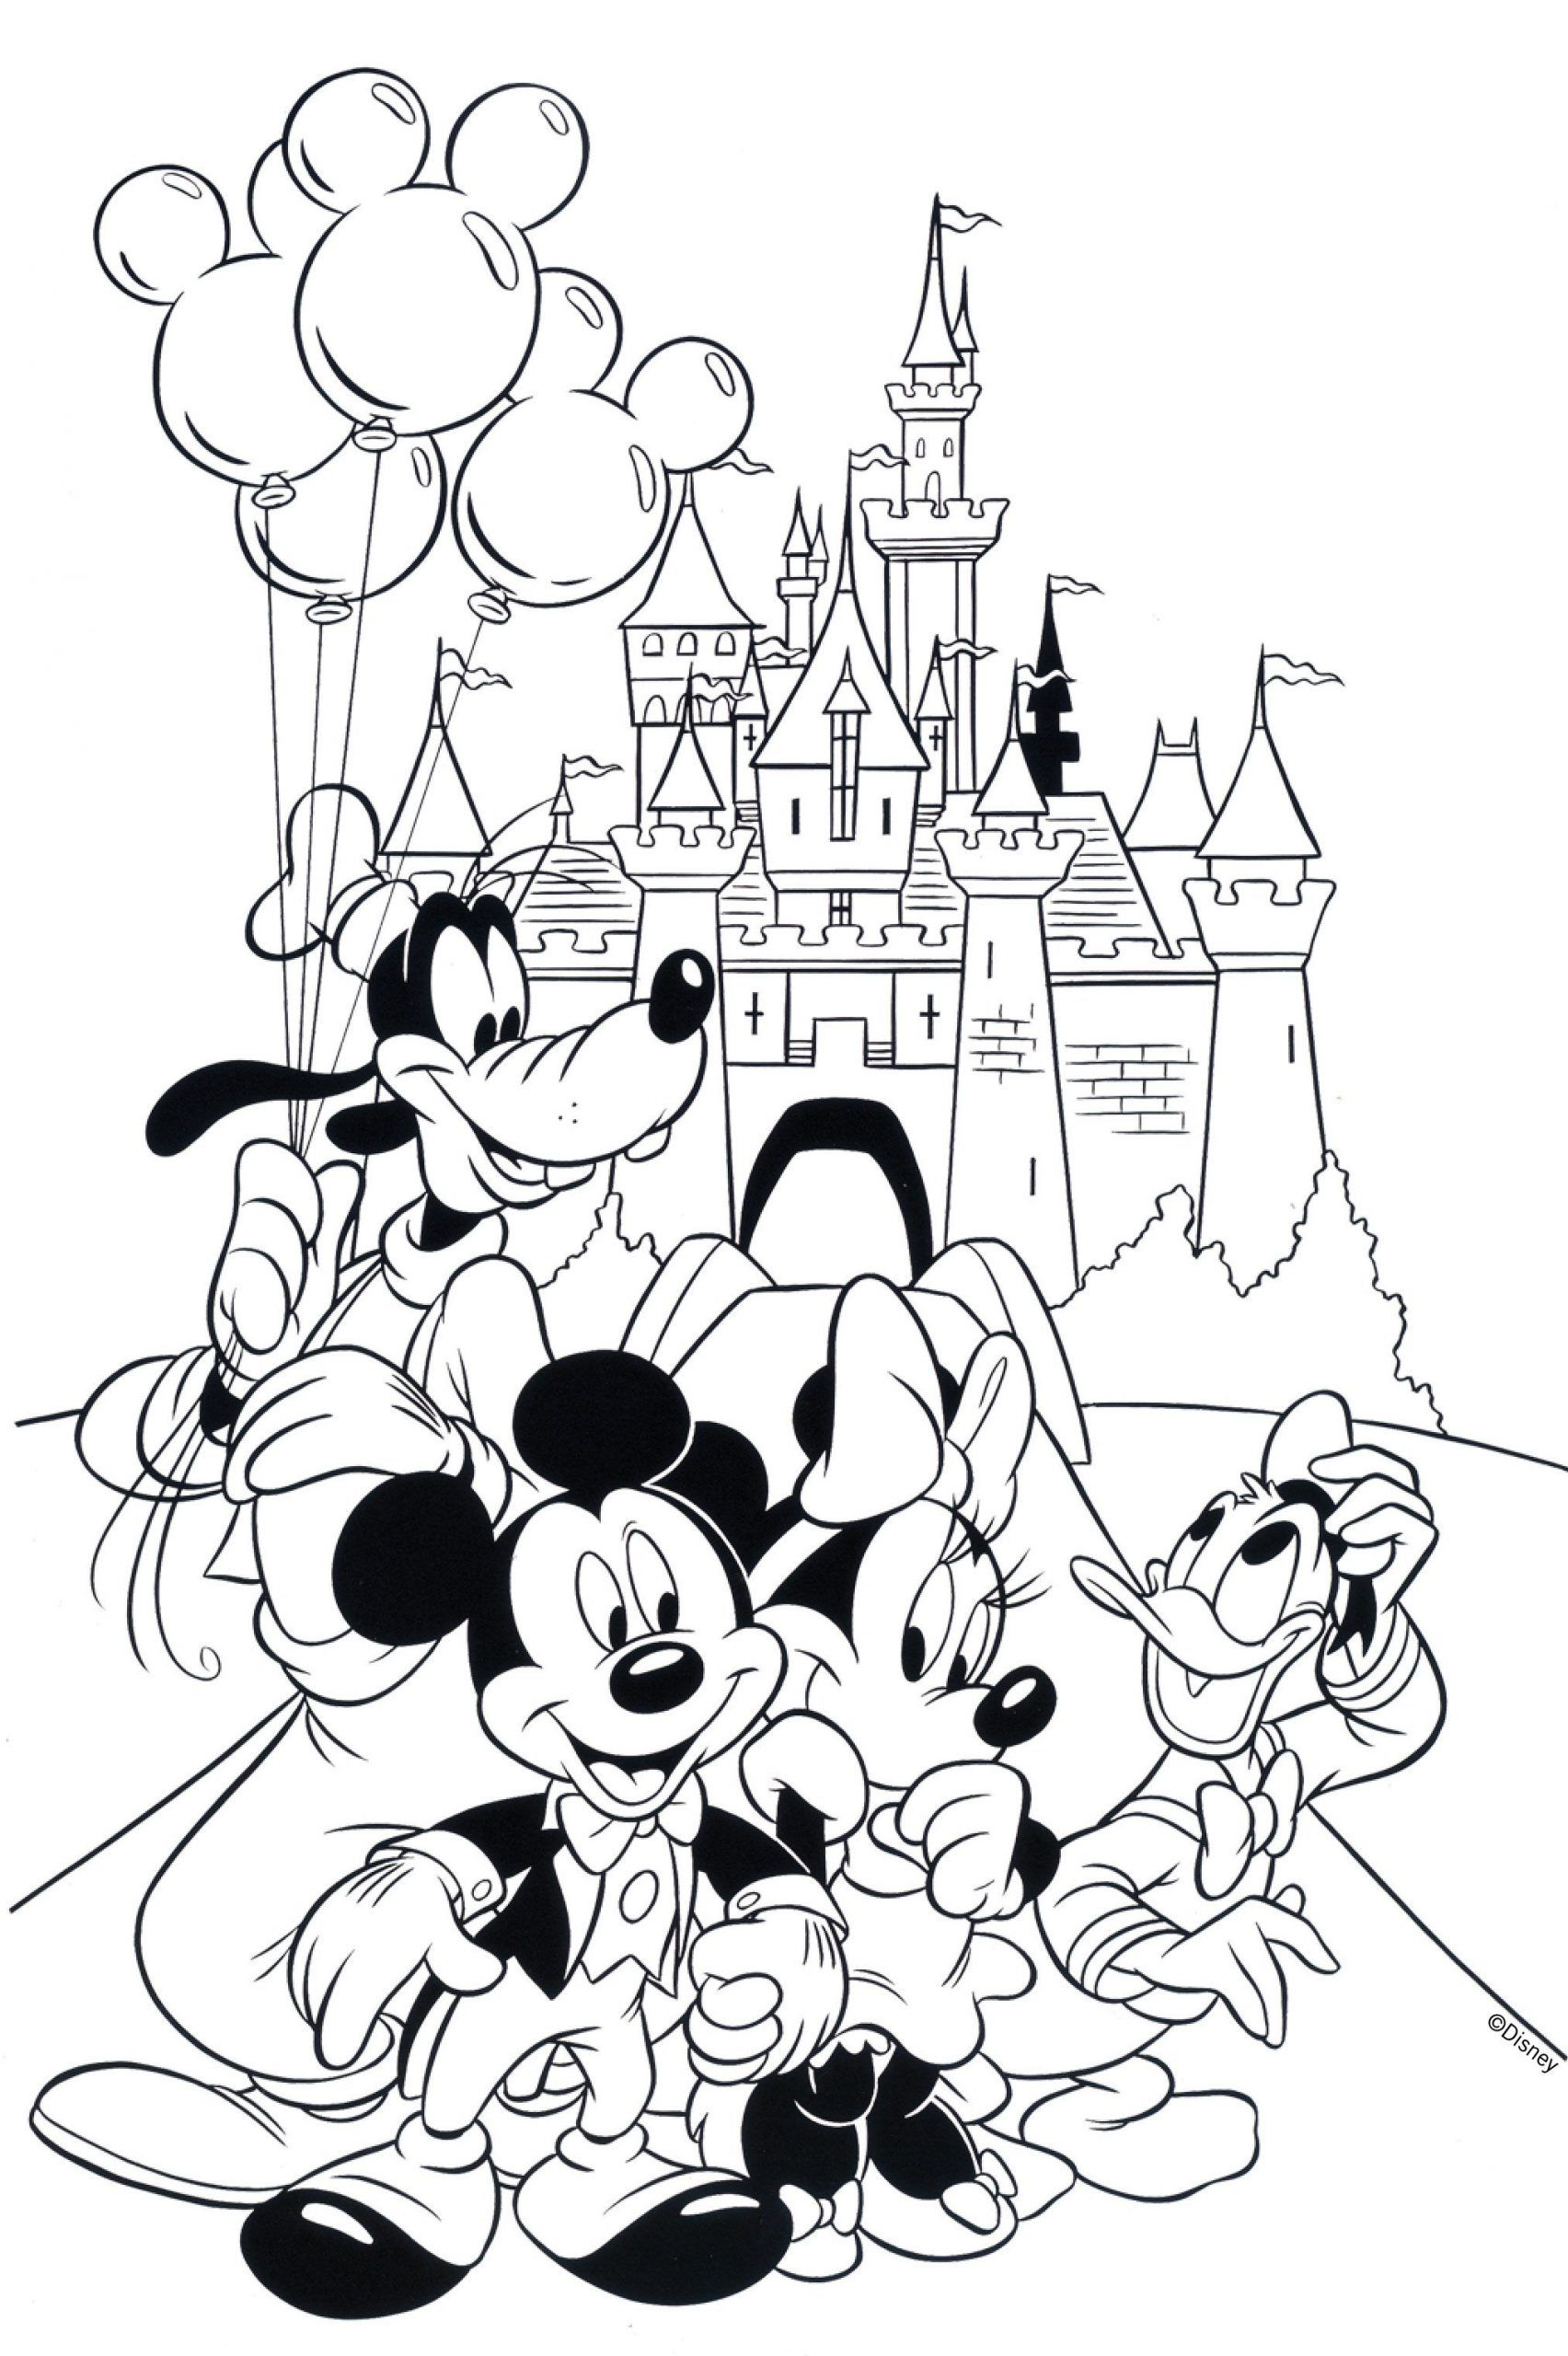 Disney Worksheets Pdf Google Search Disney Coloring Pages Disney Coloring Sheets Minnie Mouse Coloring Pages